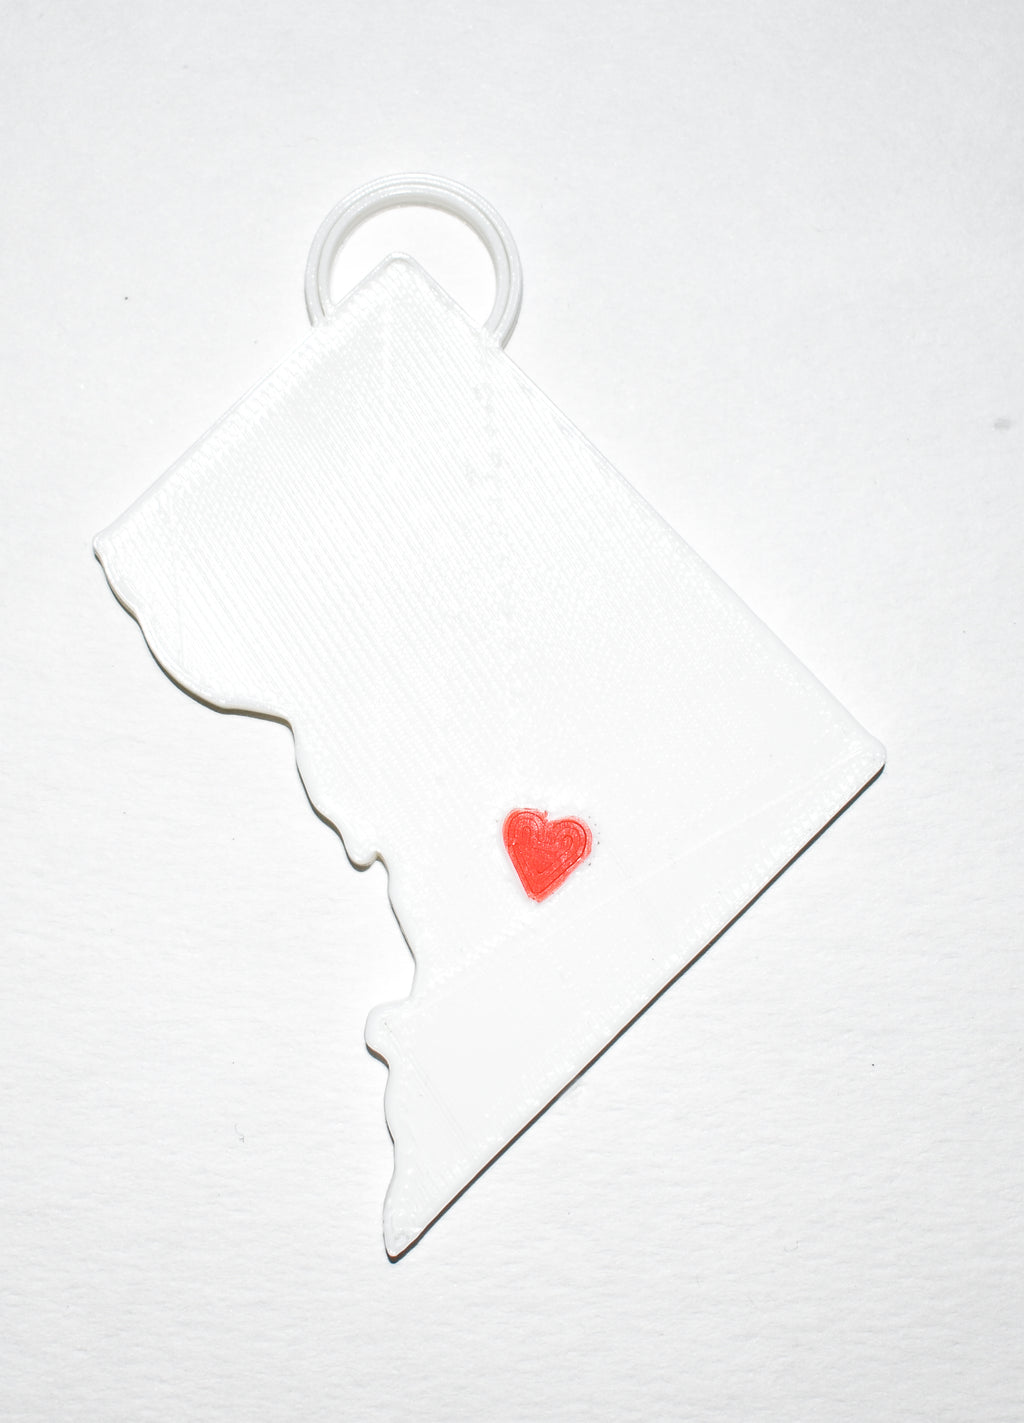 Washington DC District Of Columbia Outline Capital Red Heart Cutout Hanging Ornament Holiday Christmas Decor Made In USA PR244-DC